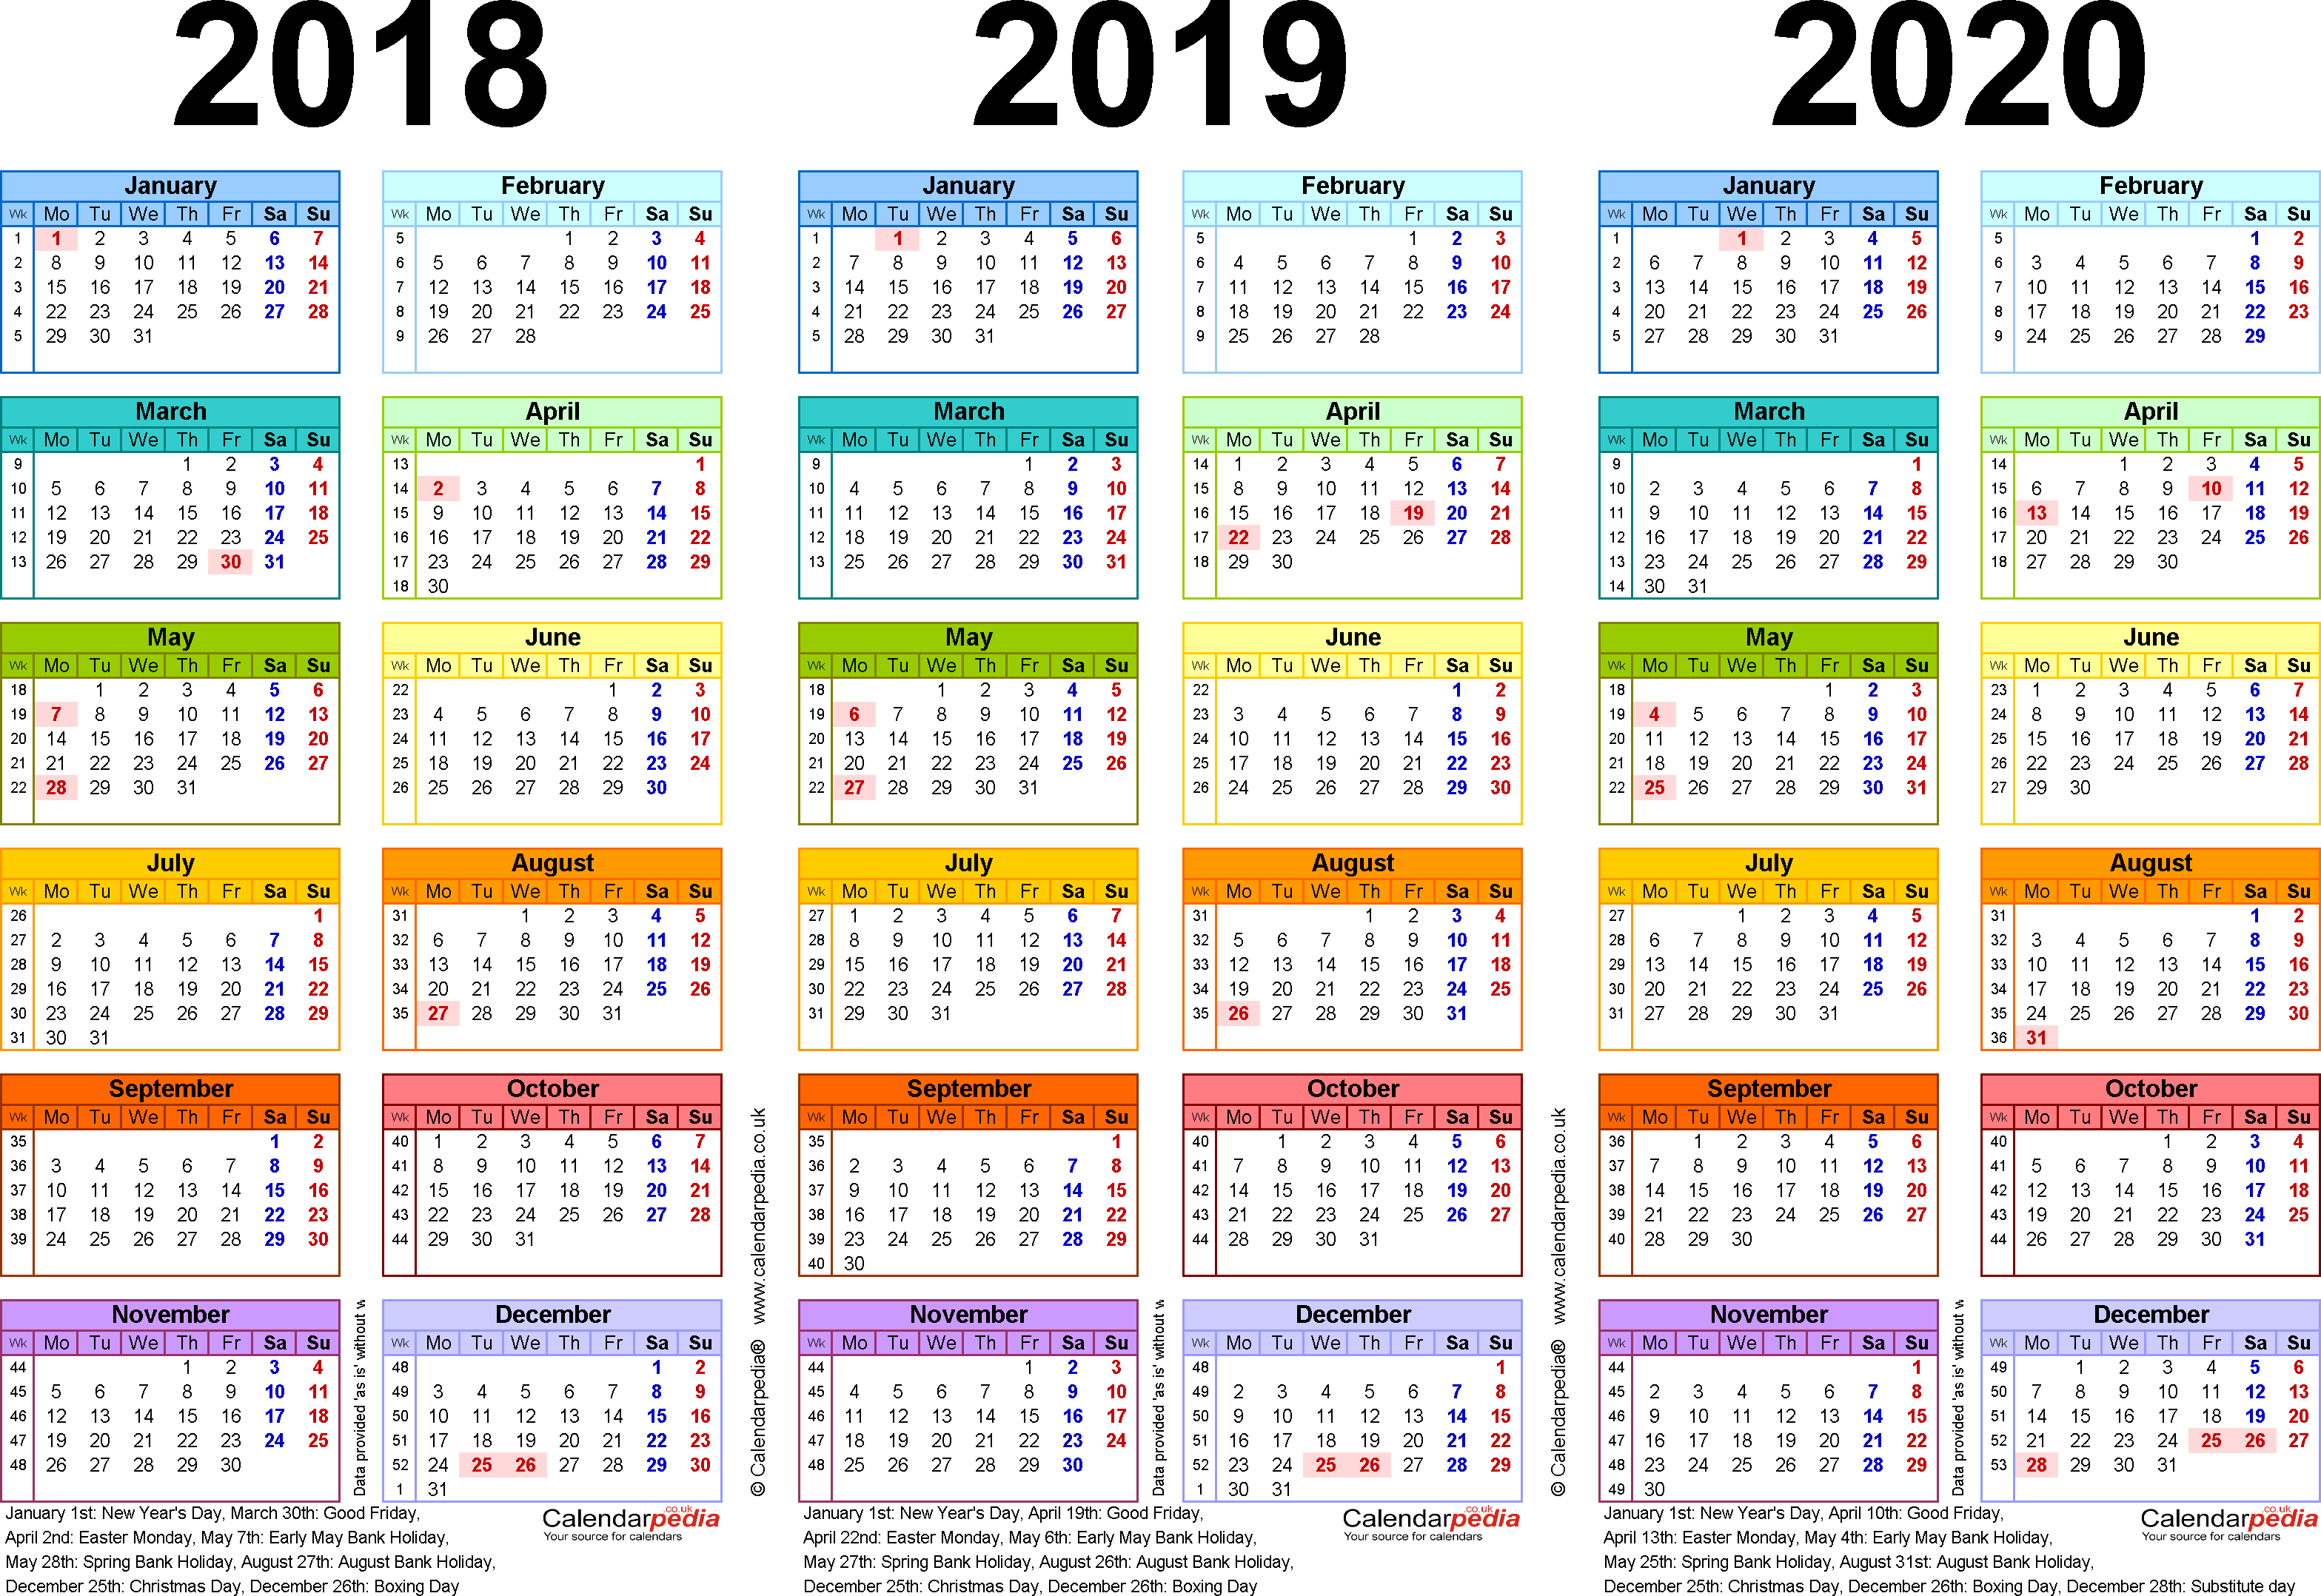 Template 1: Word template for three year calendar 2018-2020 in colour (landscape orientation, 1 page, A4)